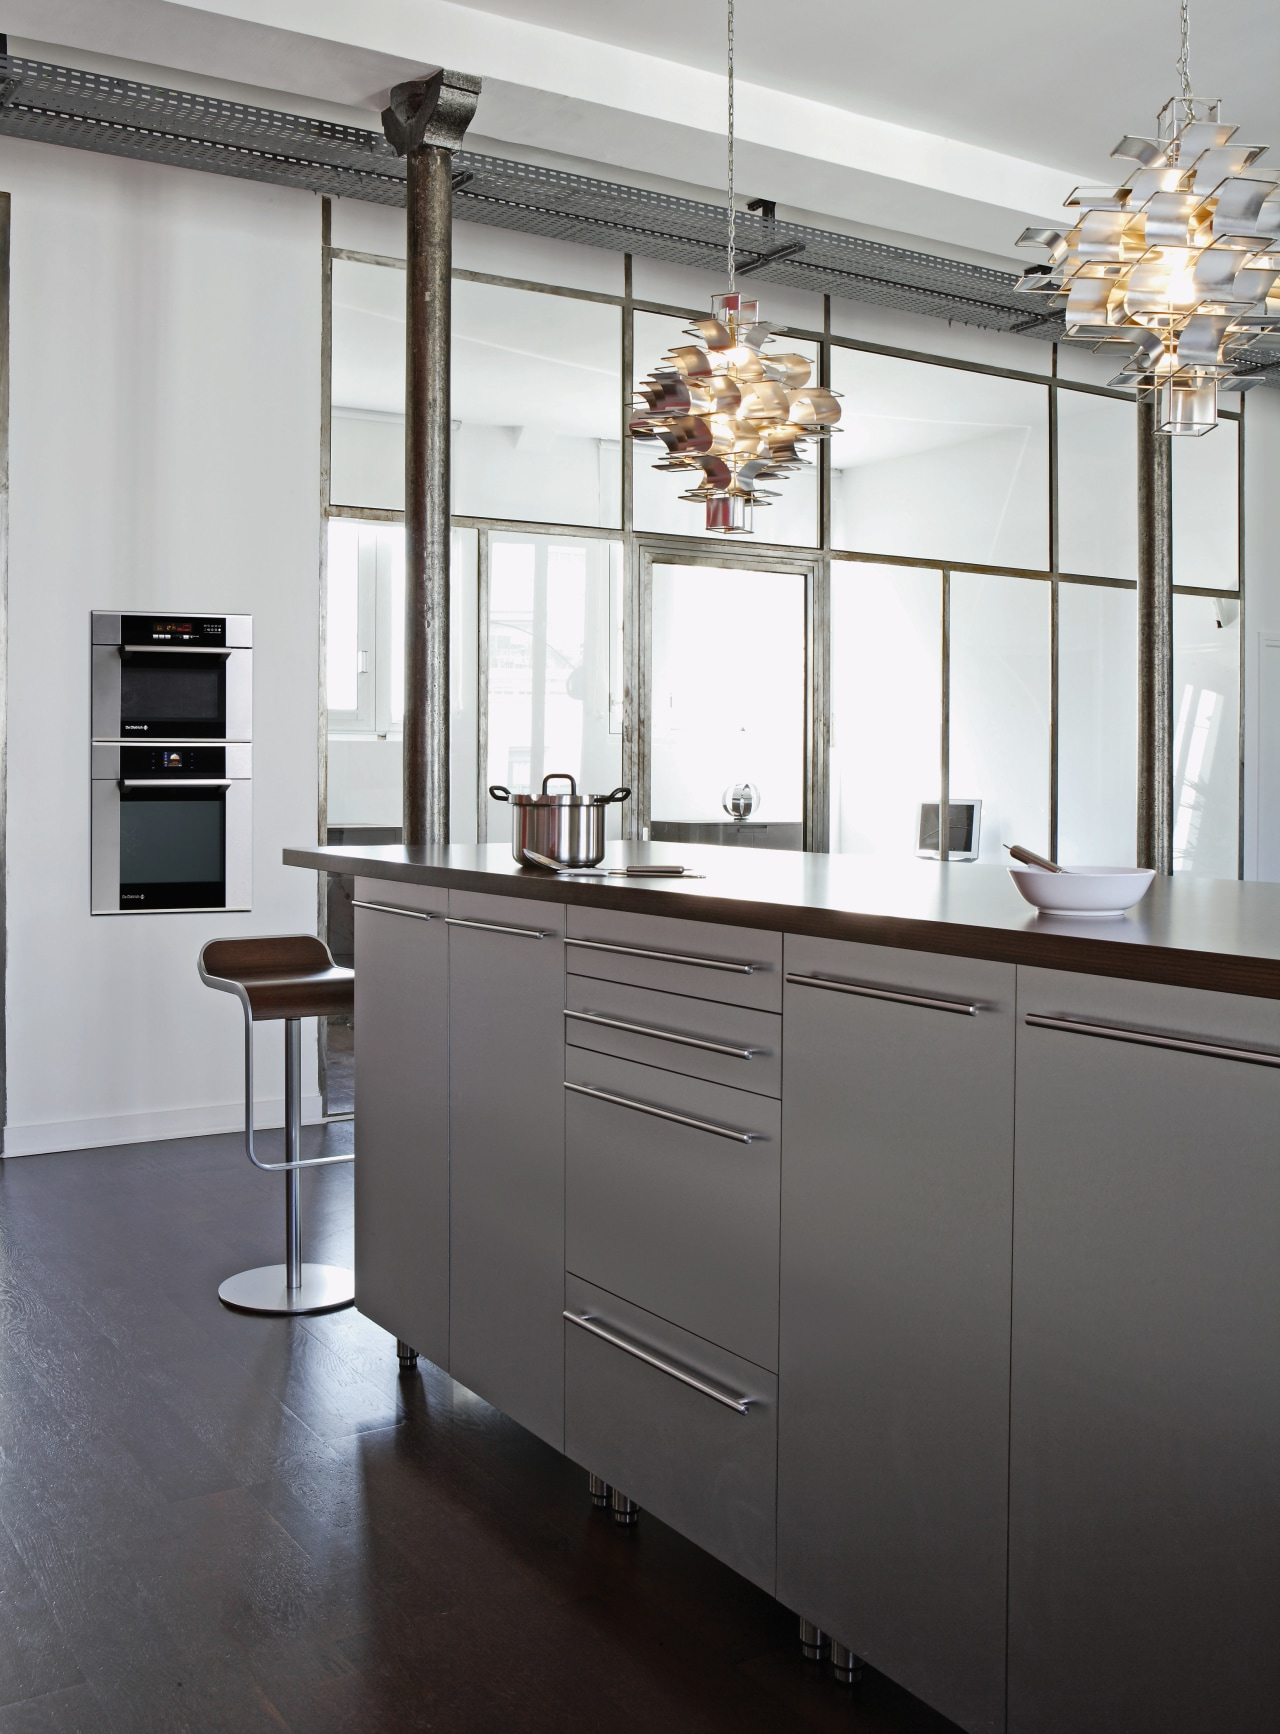 De Dietrich appliances have a sleek aesthetic that cabinetry, countertop, furniture, interior design, kitchen, gray, white